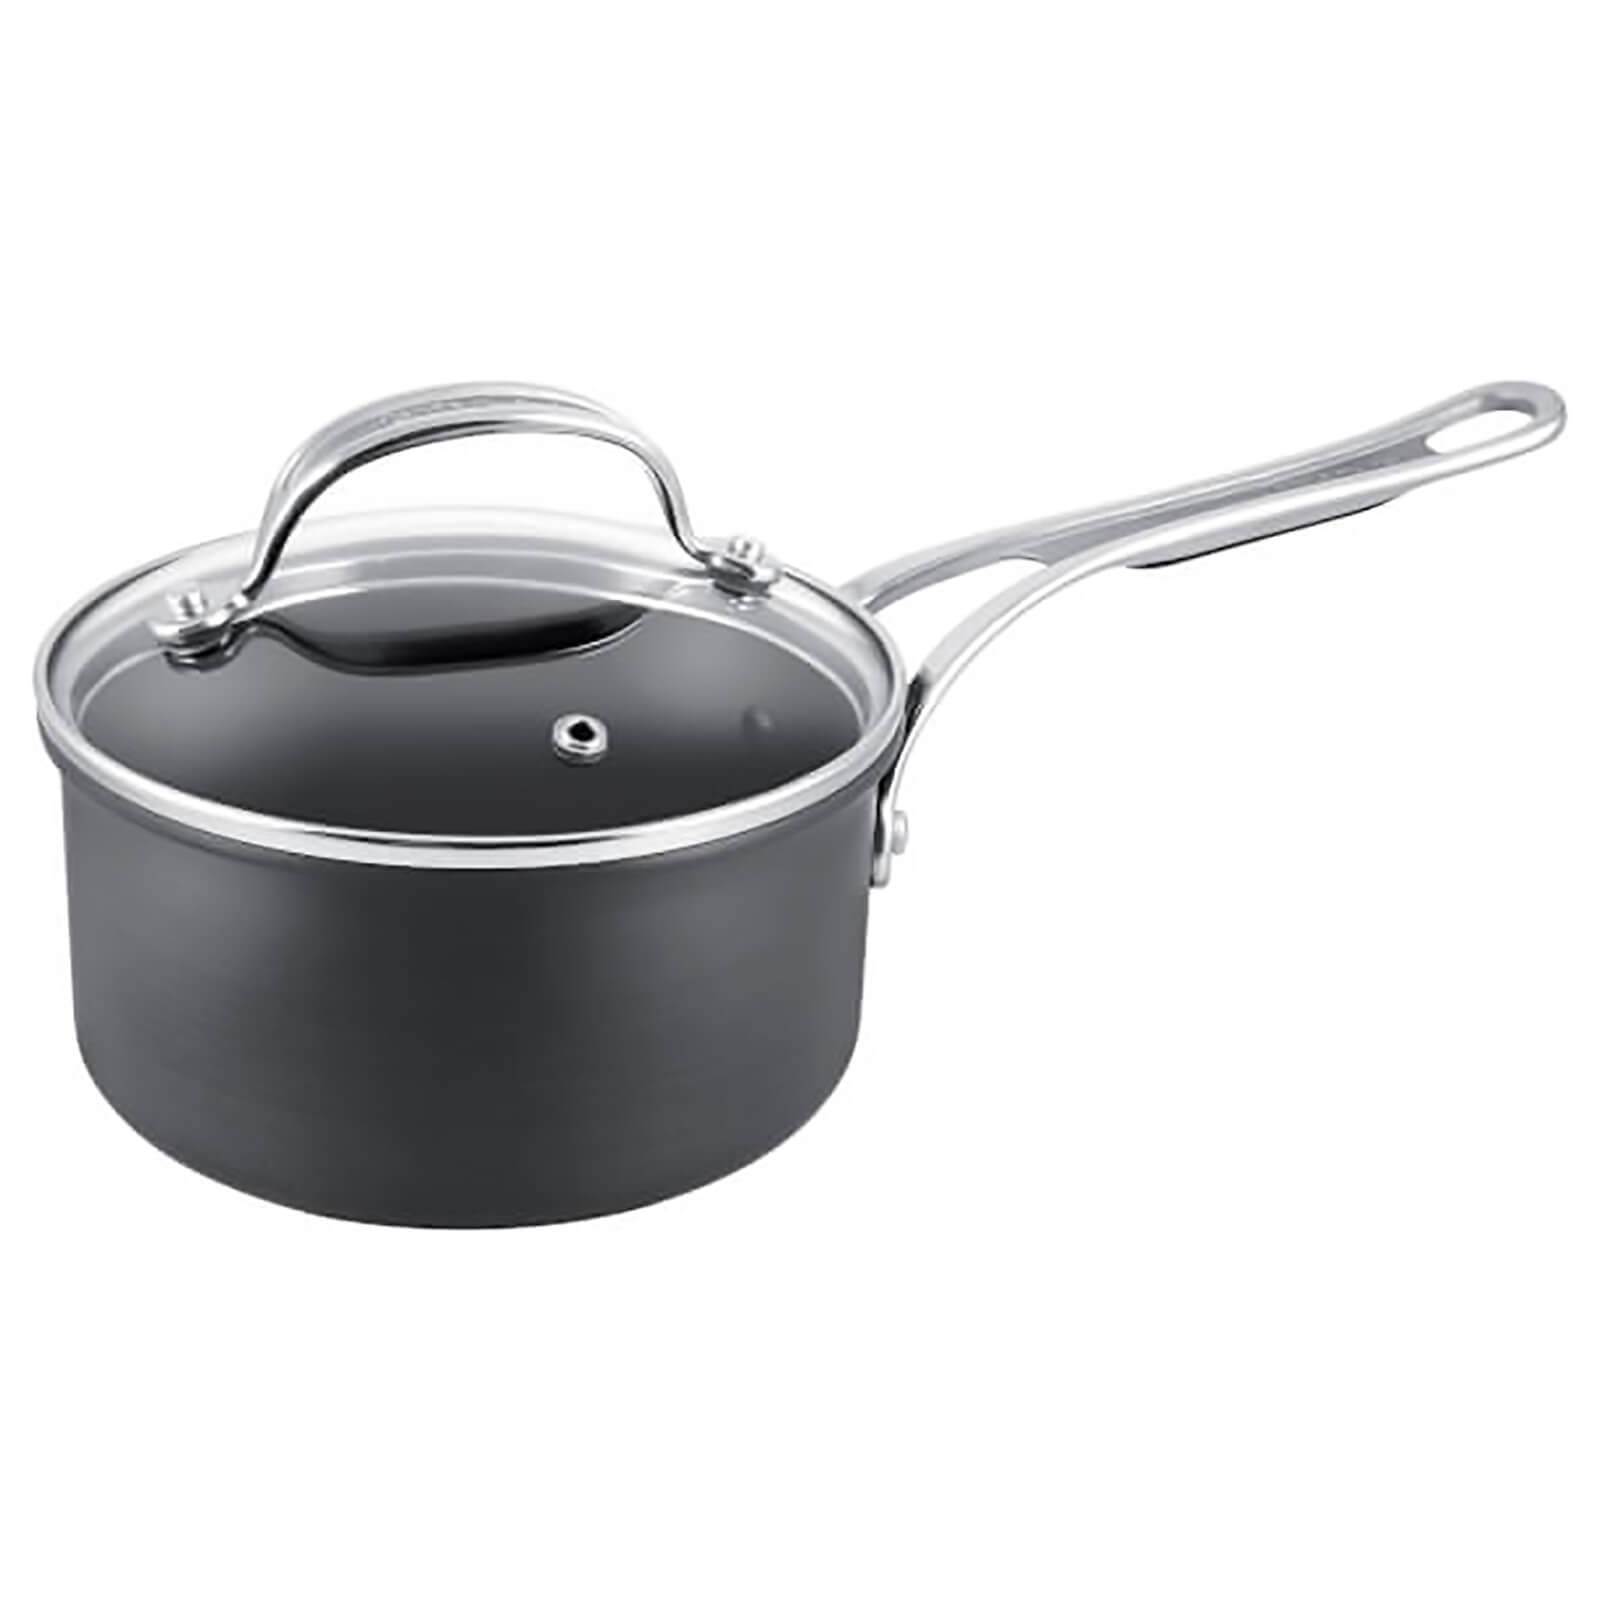 Tefal Jamie Oliver by Tefal Hard Anodised Non-Stick Saucepan with Lid - 20cm